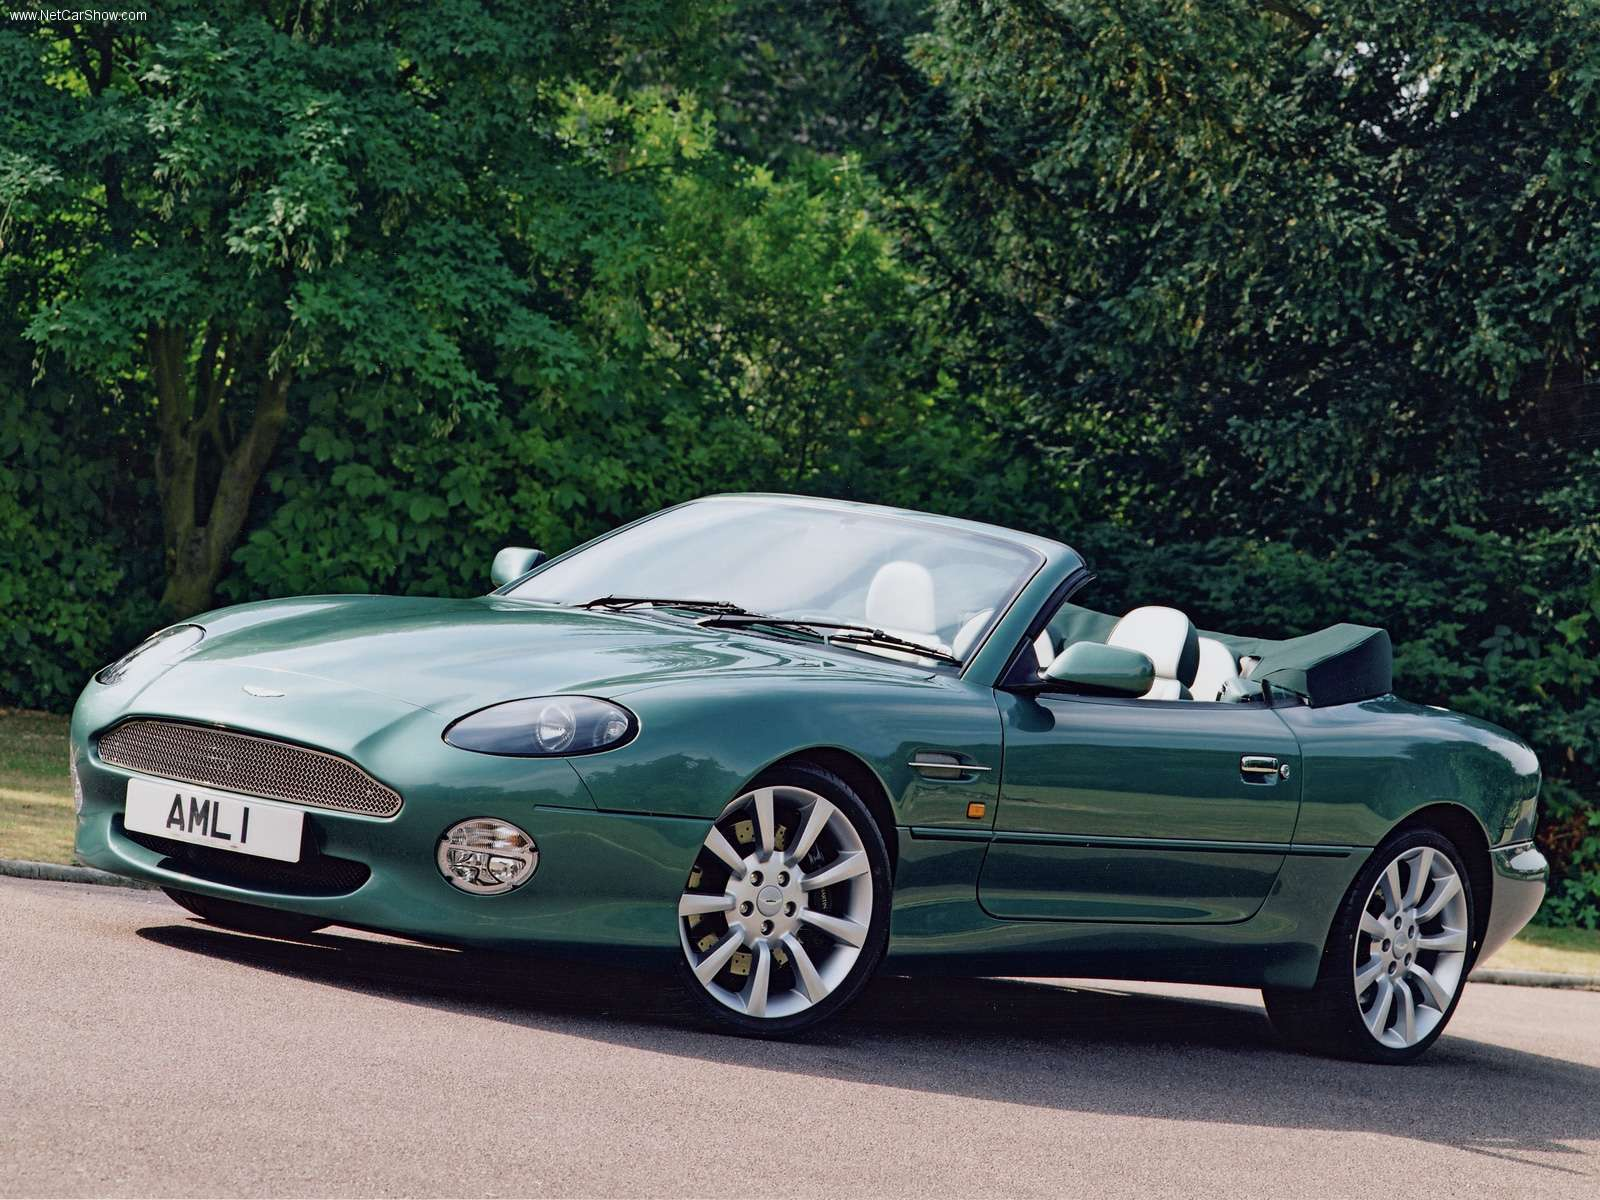 Aston Martin Db7 Technical Specifications And Fuel Economy